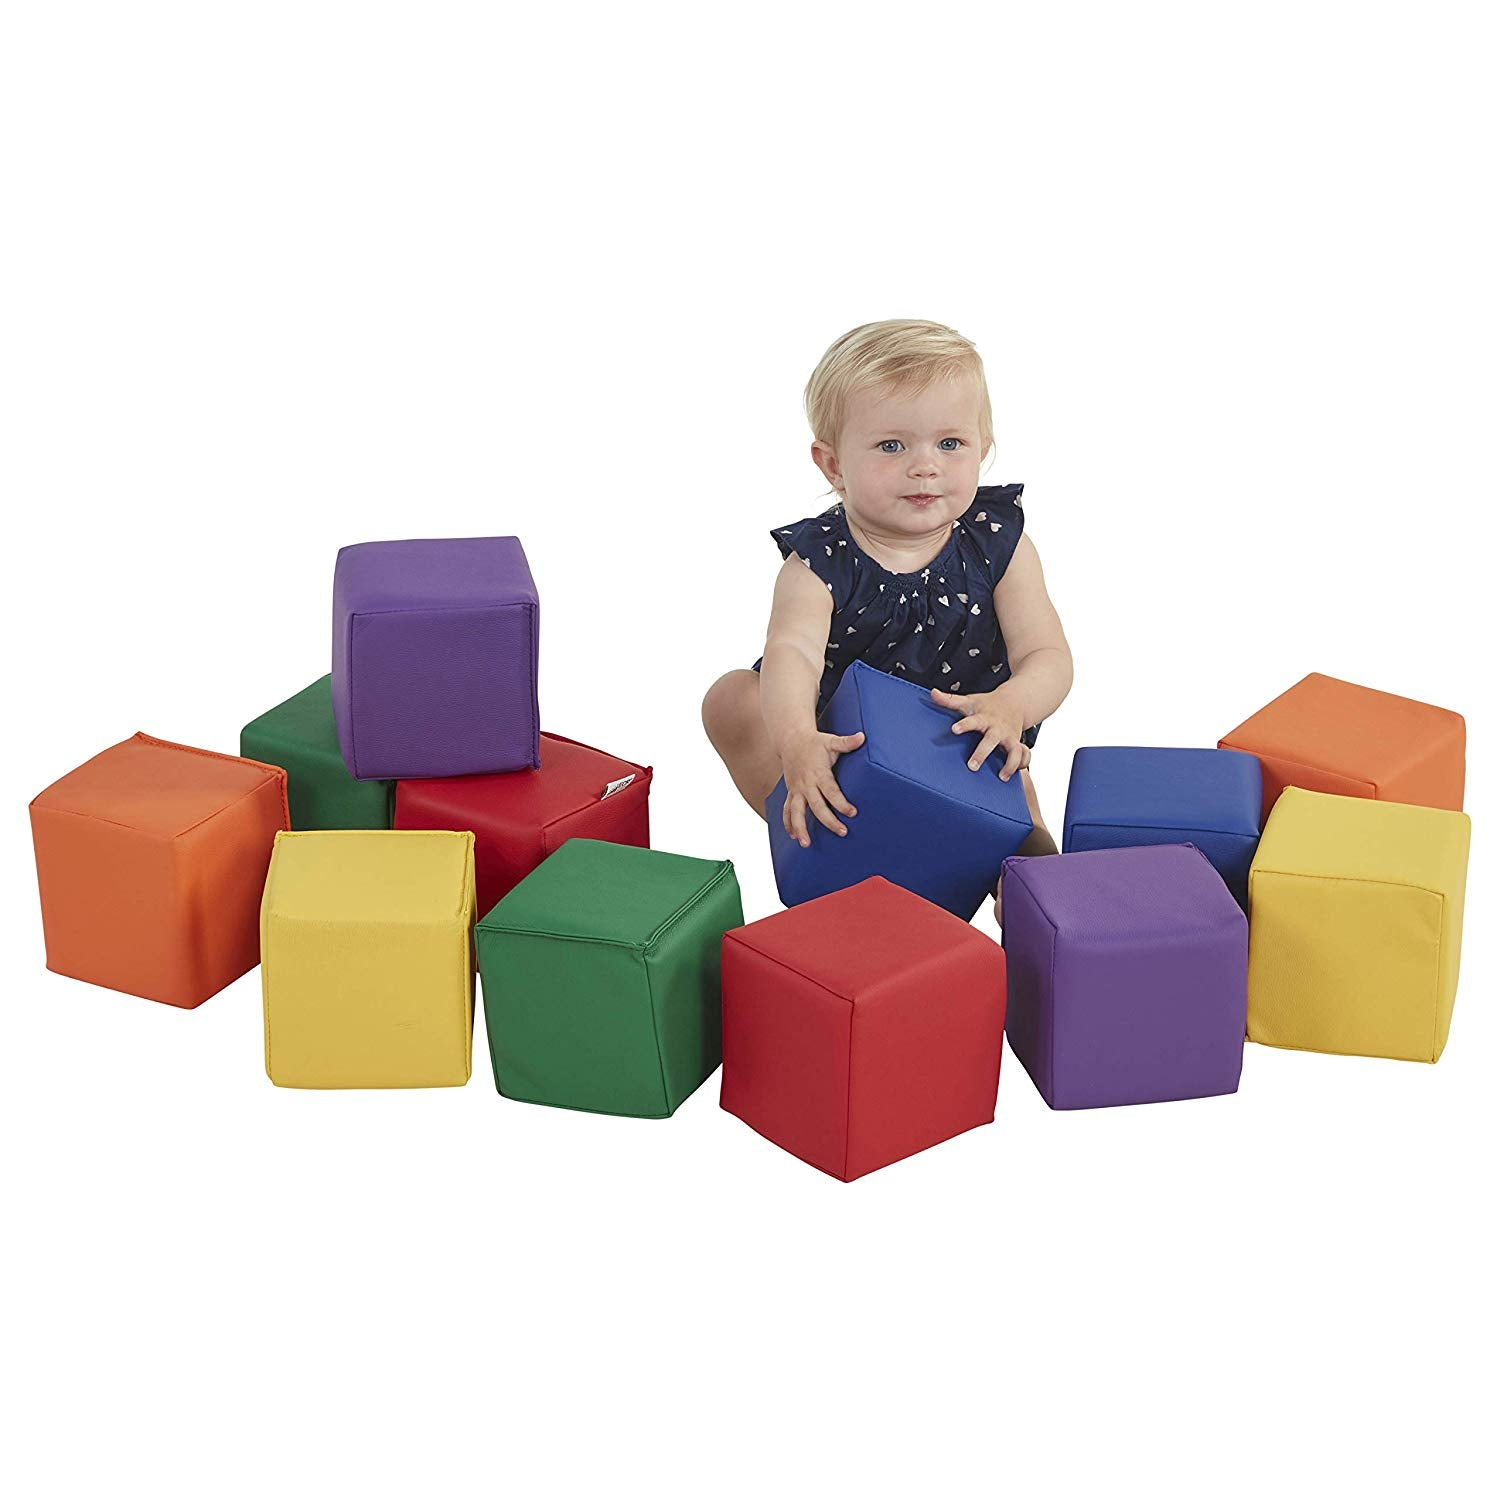 Baby Toddler Soft Block Playset Safe Active Playroom Building Blocks 12pcs